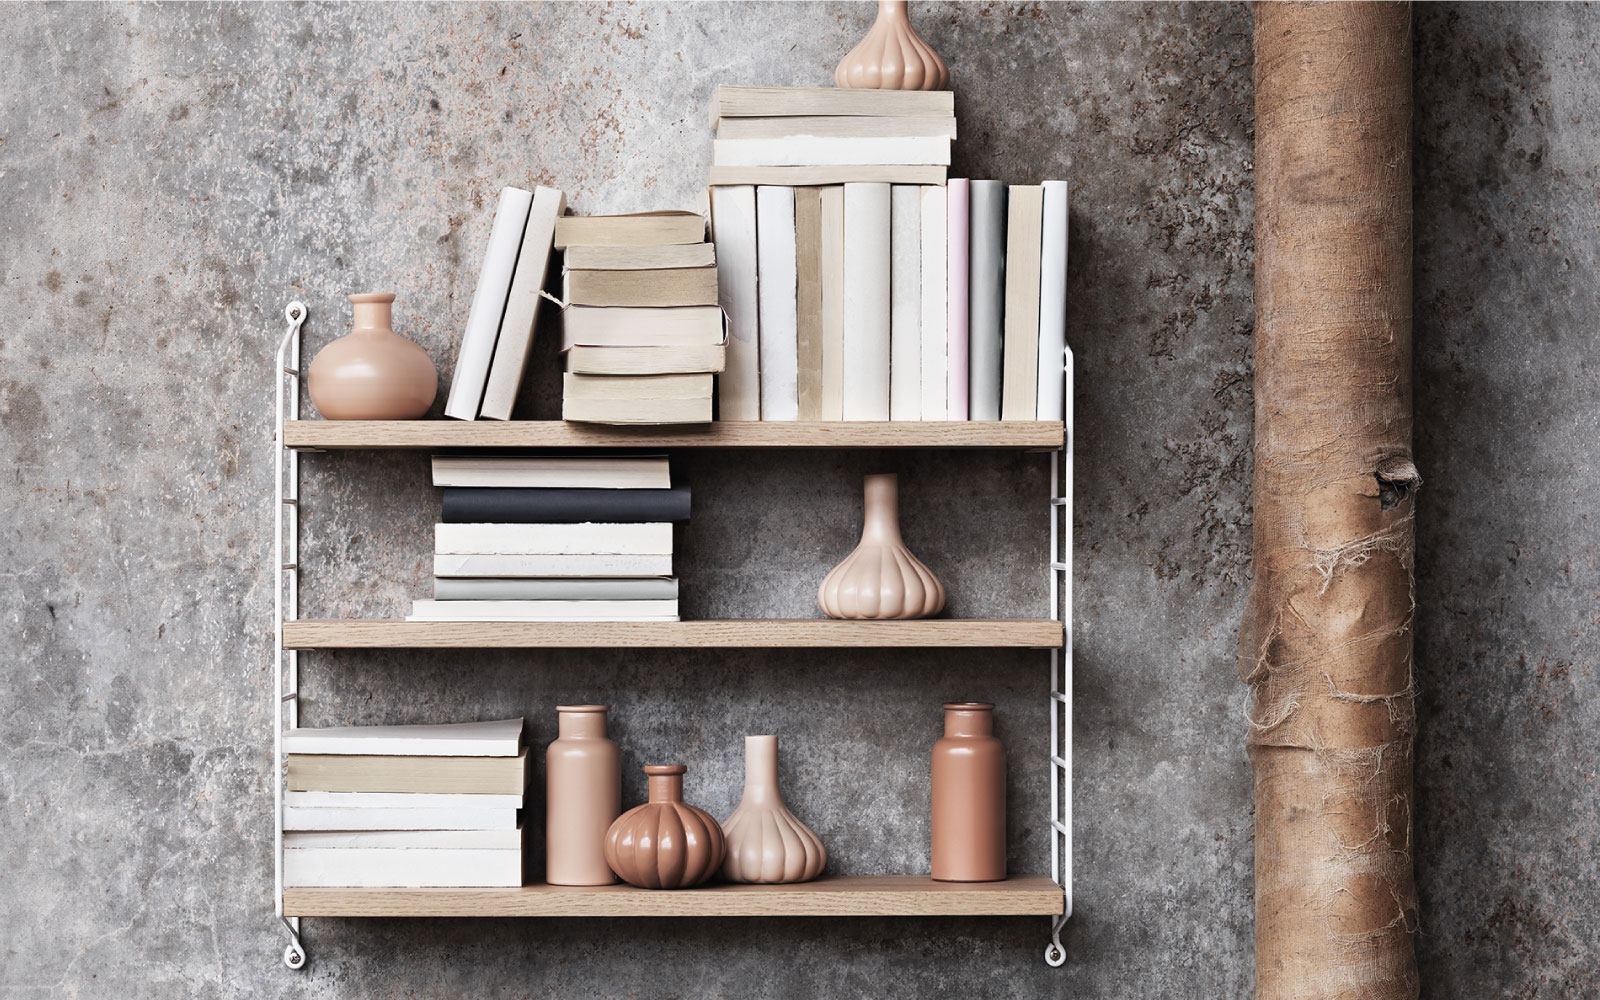 string-shelf-lookbook-styled-by-lotta-agaton-7